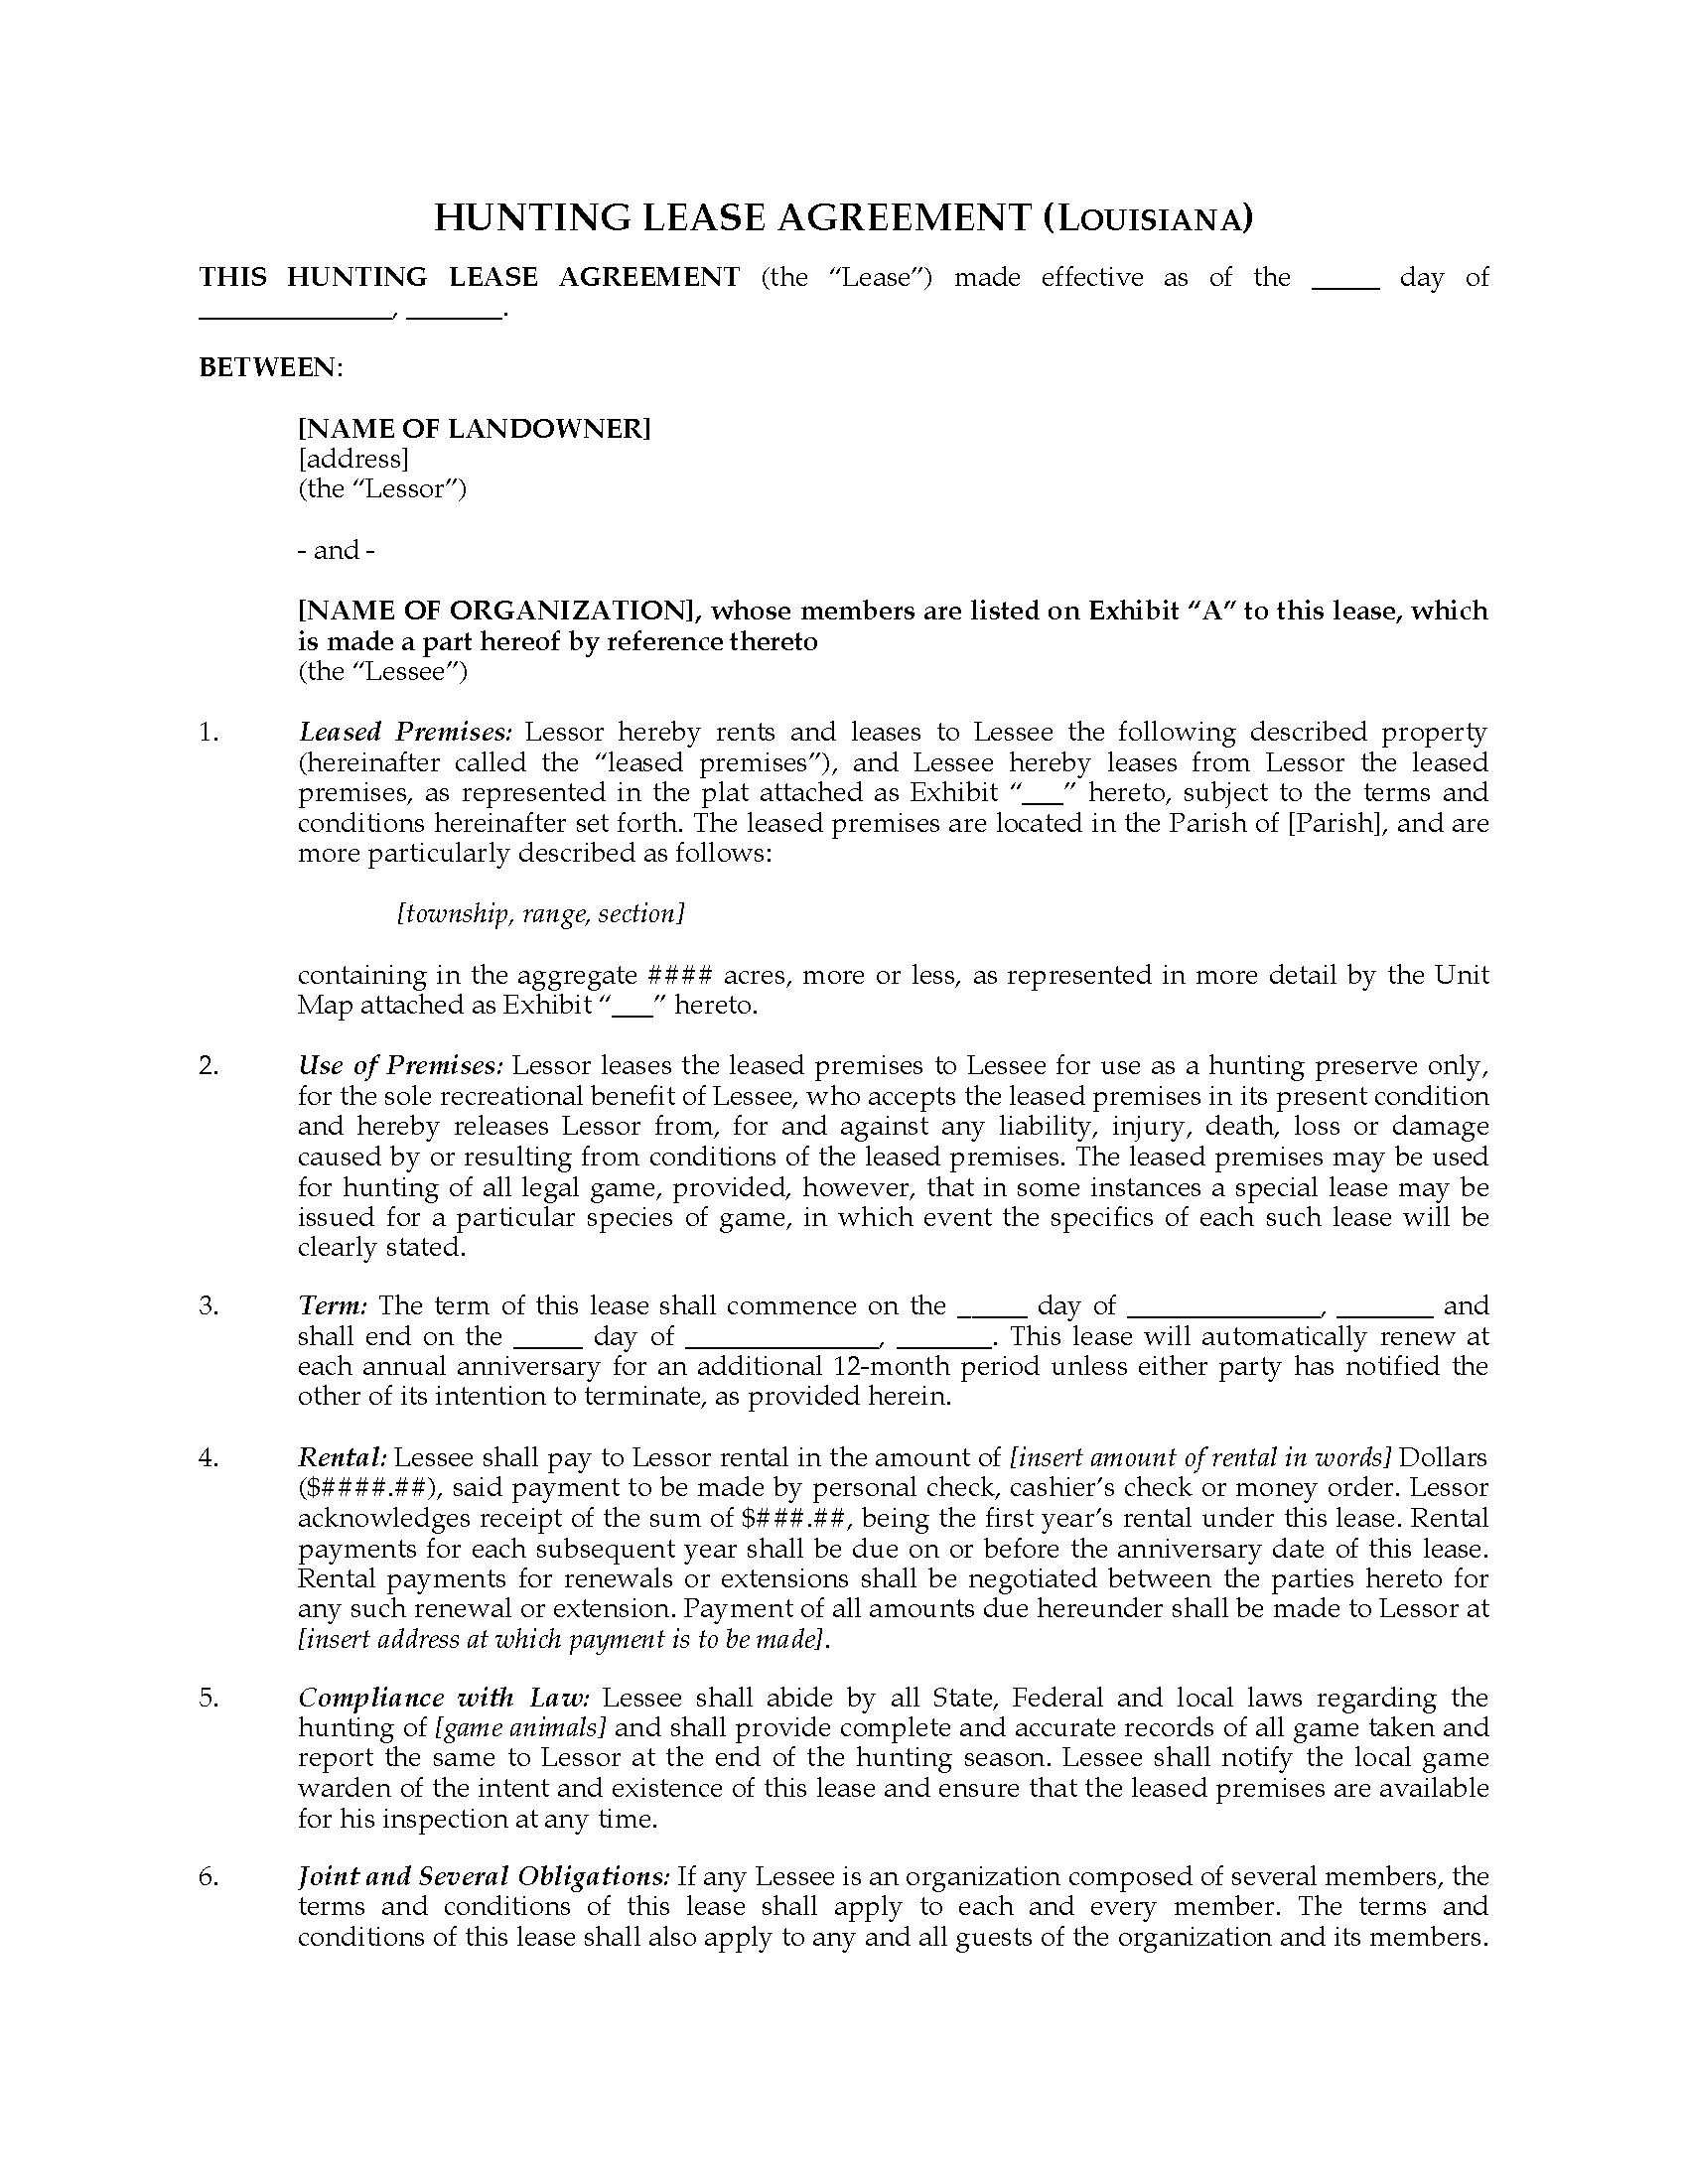 Louisiana Hunting Lease Agreement Legal Forms And Business